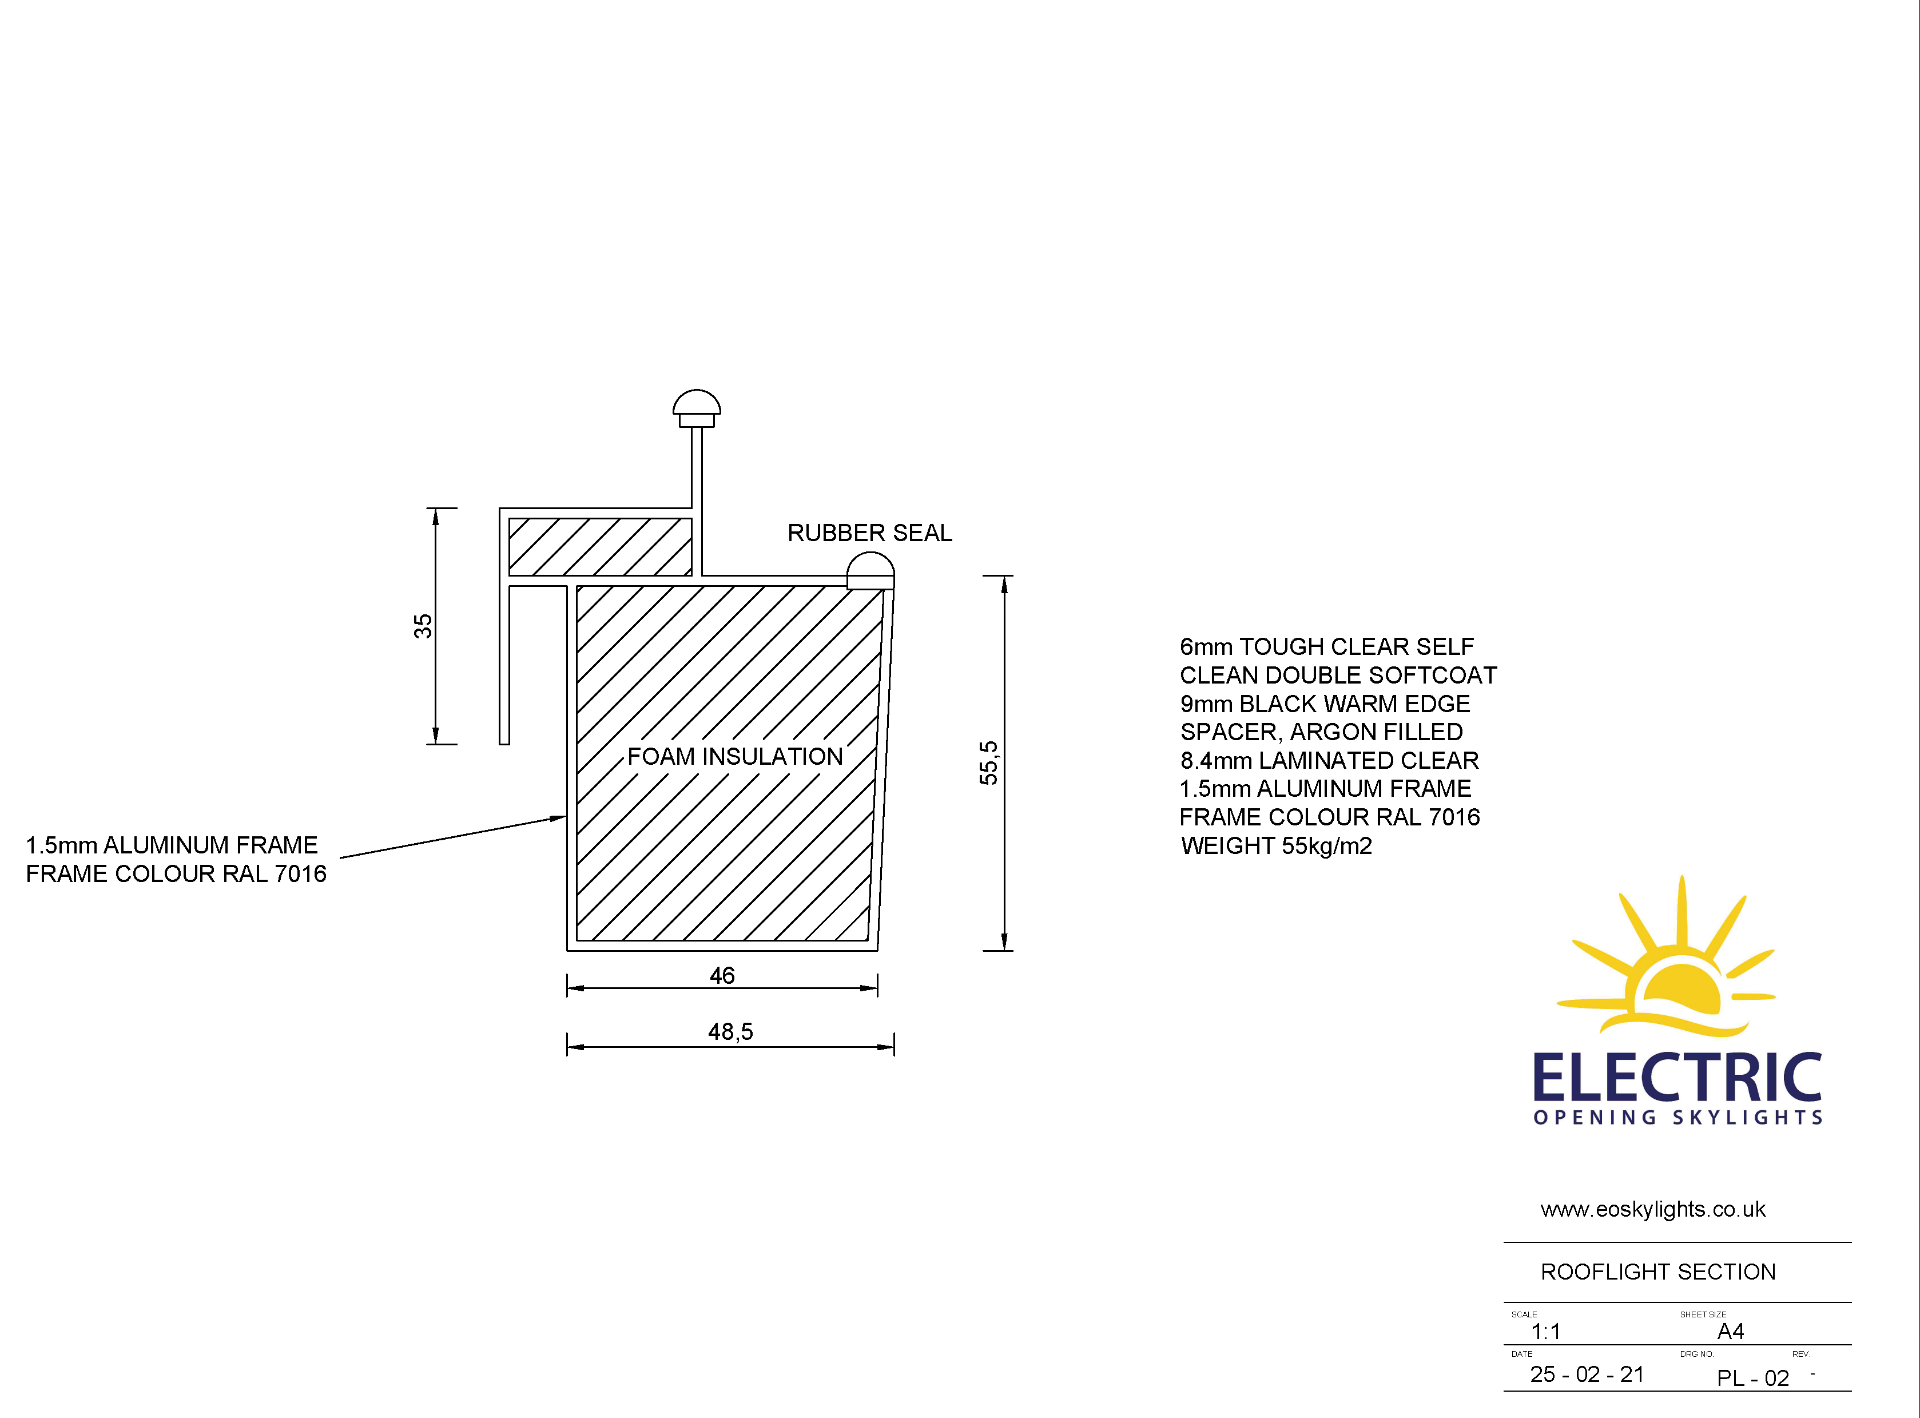 Panoroof (EOS) Electric Opening Skylight 600x900mm - Aluminiun Frame Double Glazed Laminated Self- - Image 5 of 6